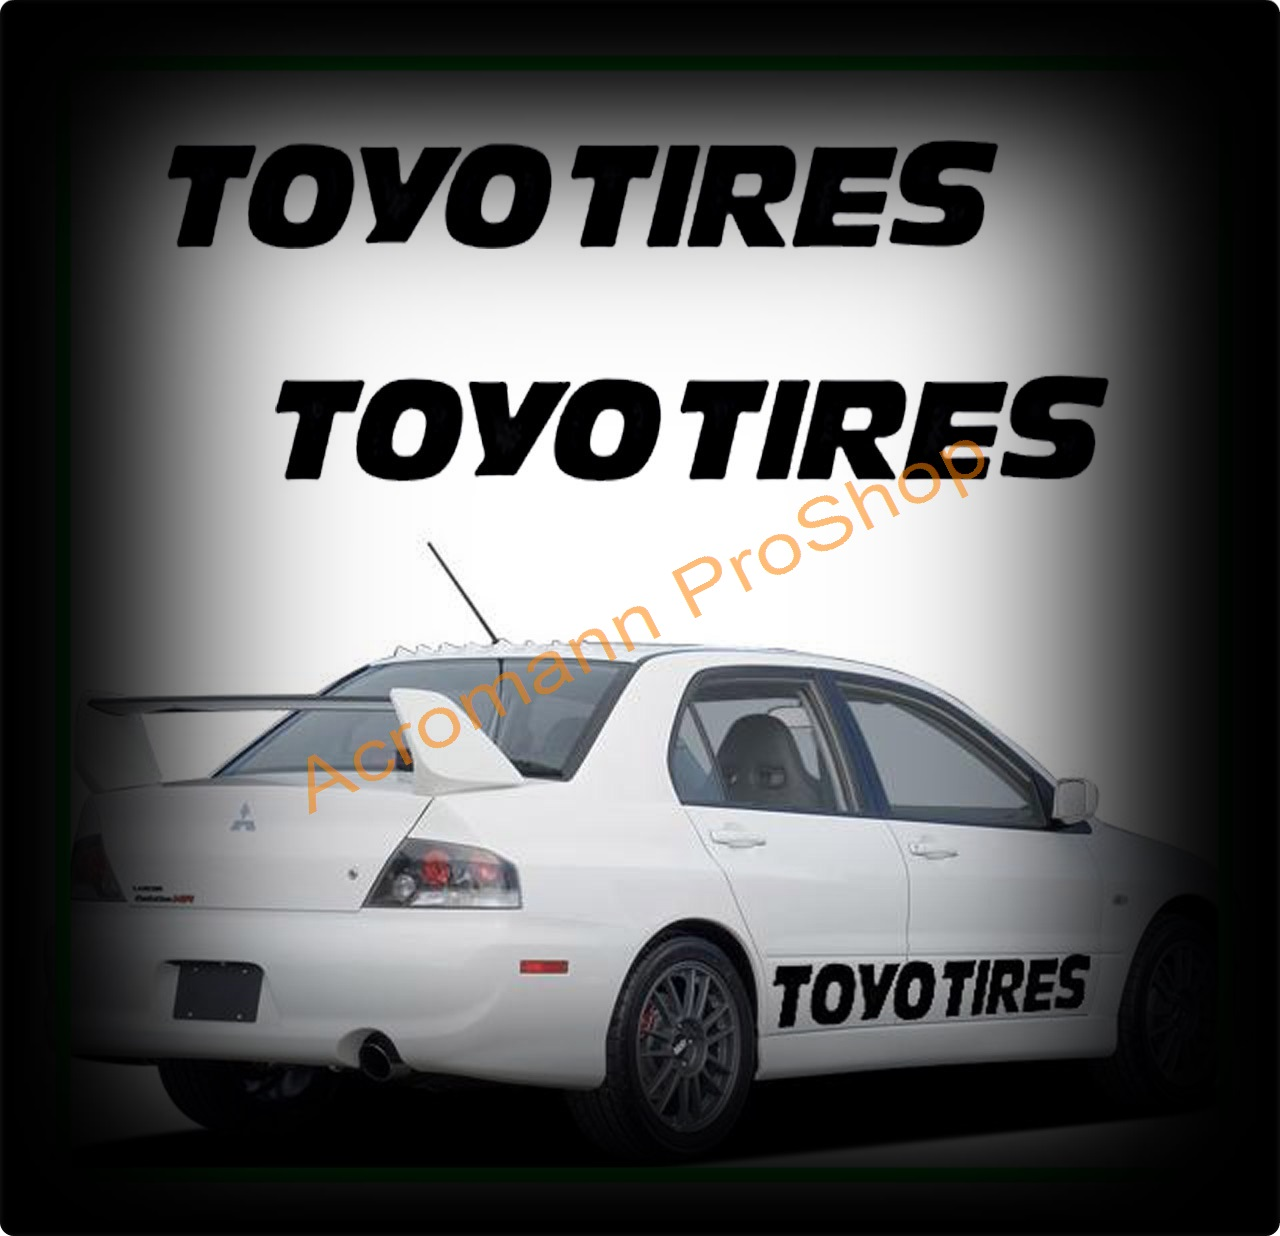 TOYO TIRES Large Side Door Decal x 1 pair (LHS & RHS)